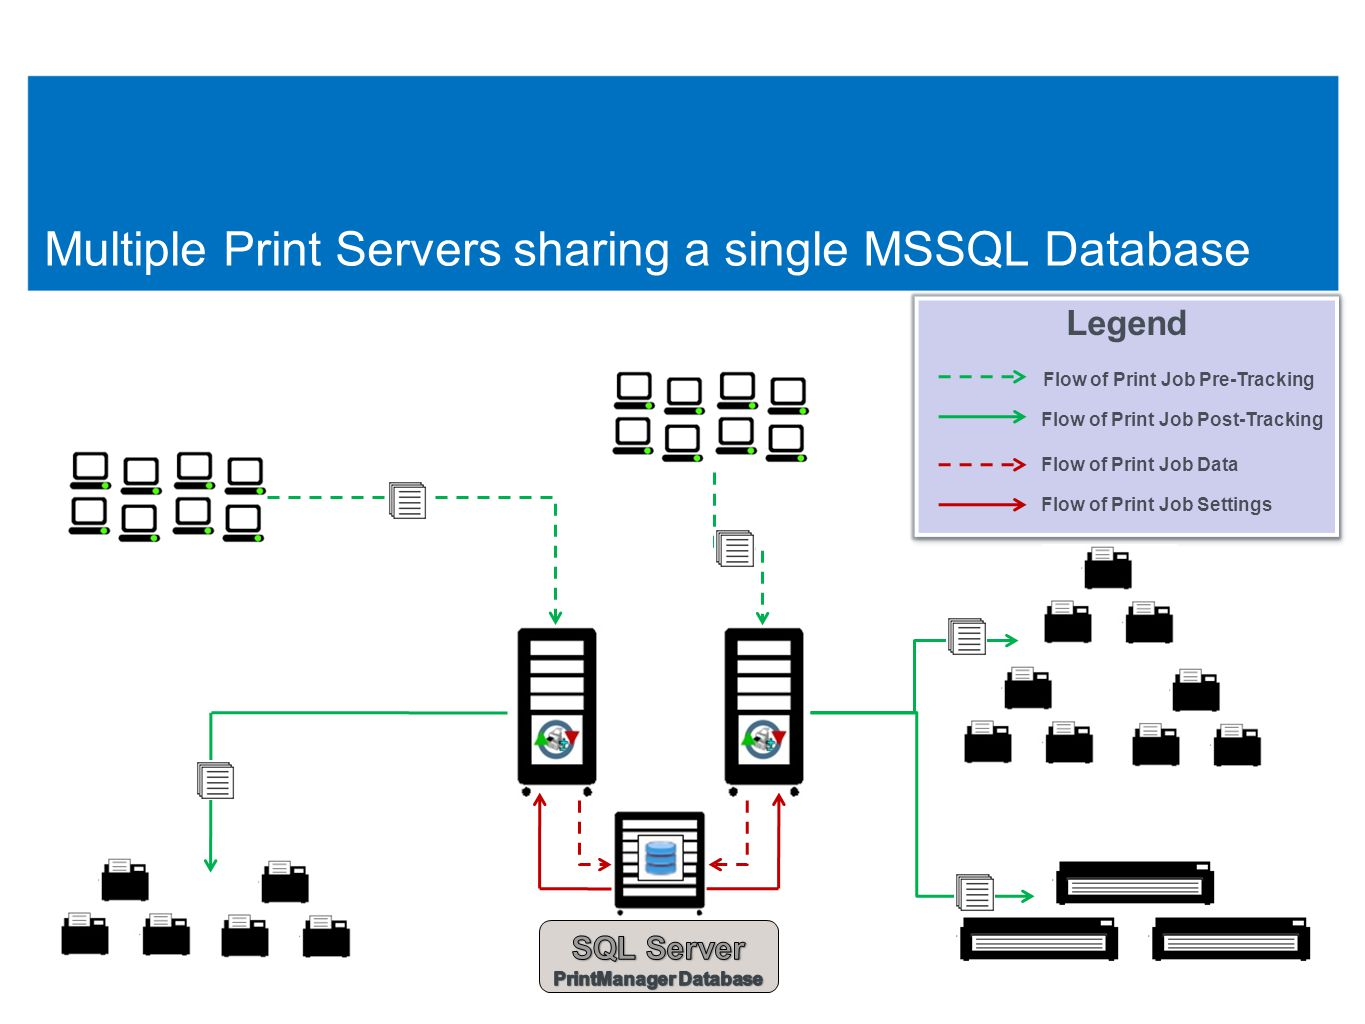 10 Multiple Print Servers, each using it own local Database 10 Legend Flow of Print Job Pre-Tracking Flow of Print Job Post-Tracking Flow of Print Job Data Flow of Print Job Settings Legend Flow of Print Job Pre-Tracking Flow of Print Job Post-Tracking Flow of Print Job Data Flow of Print Job Settings